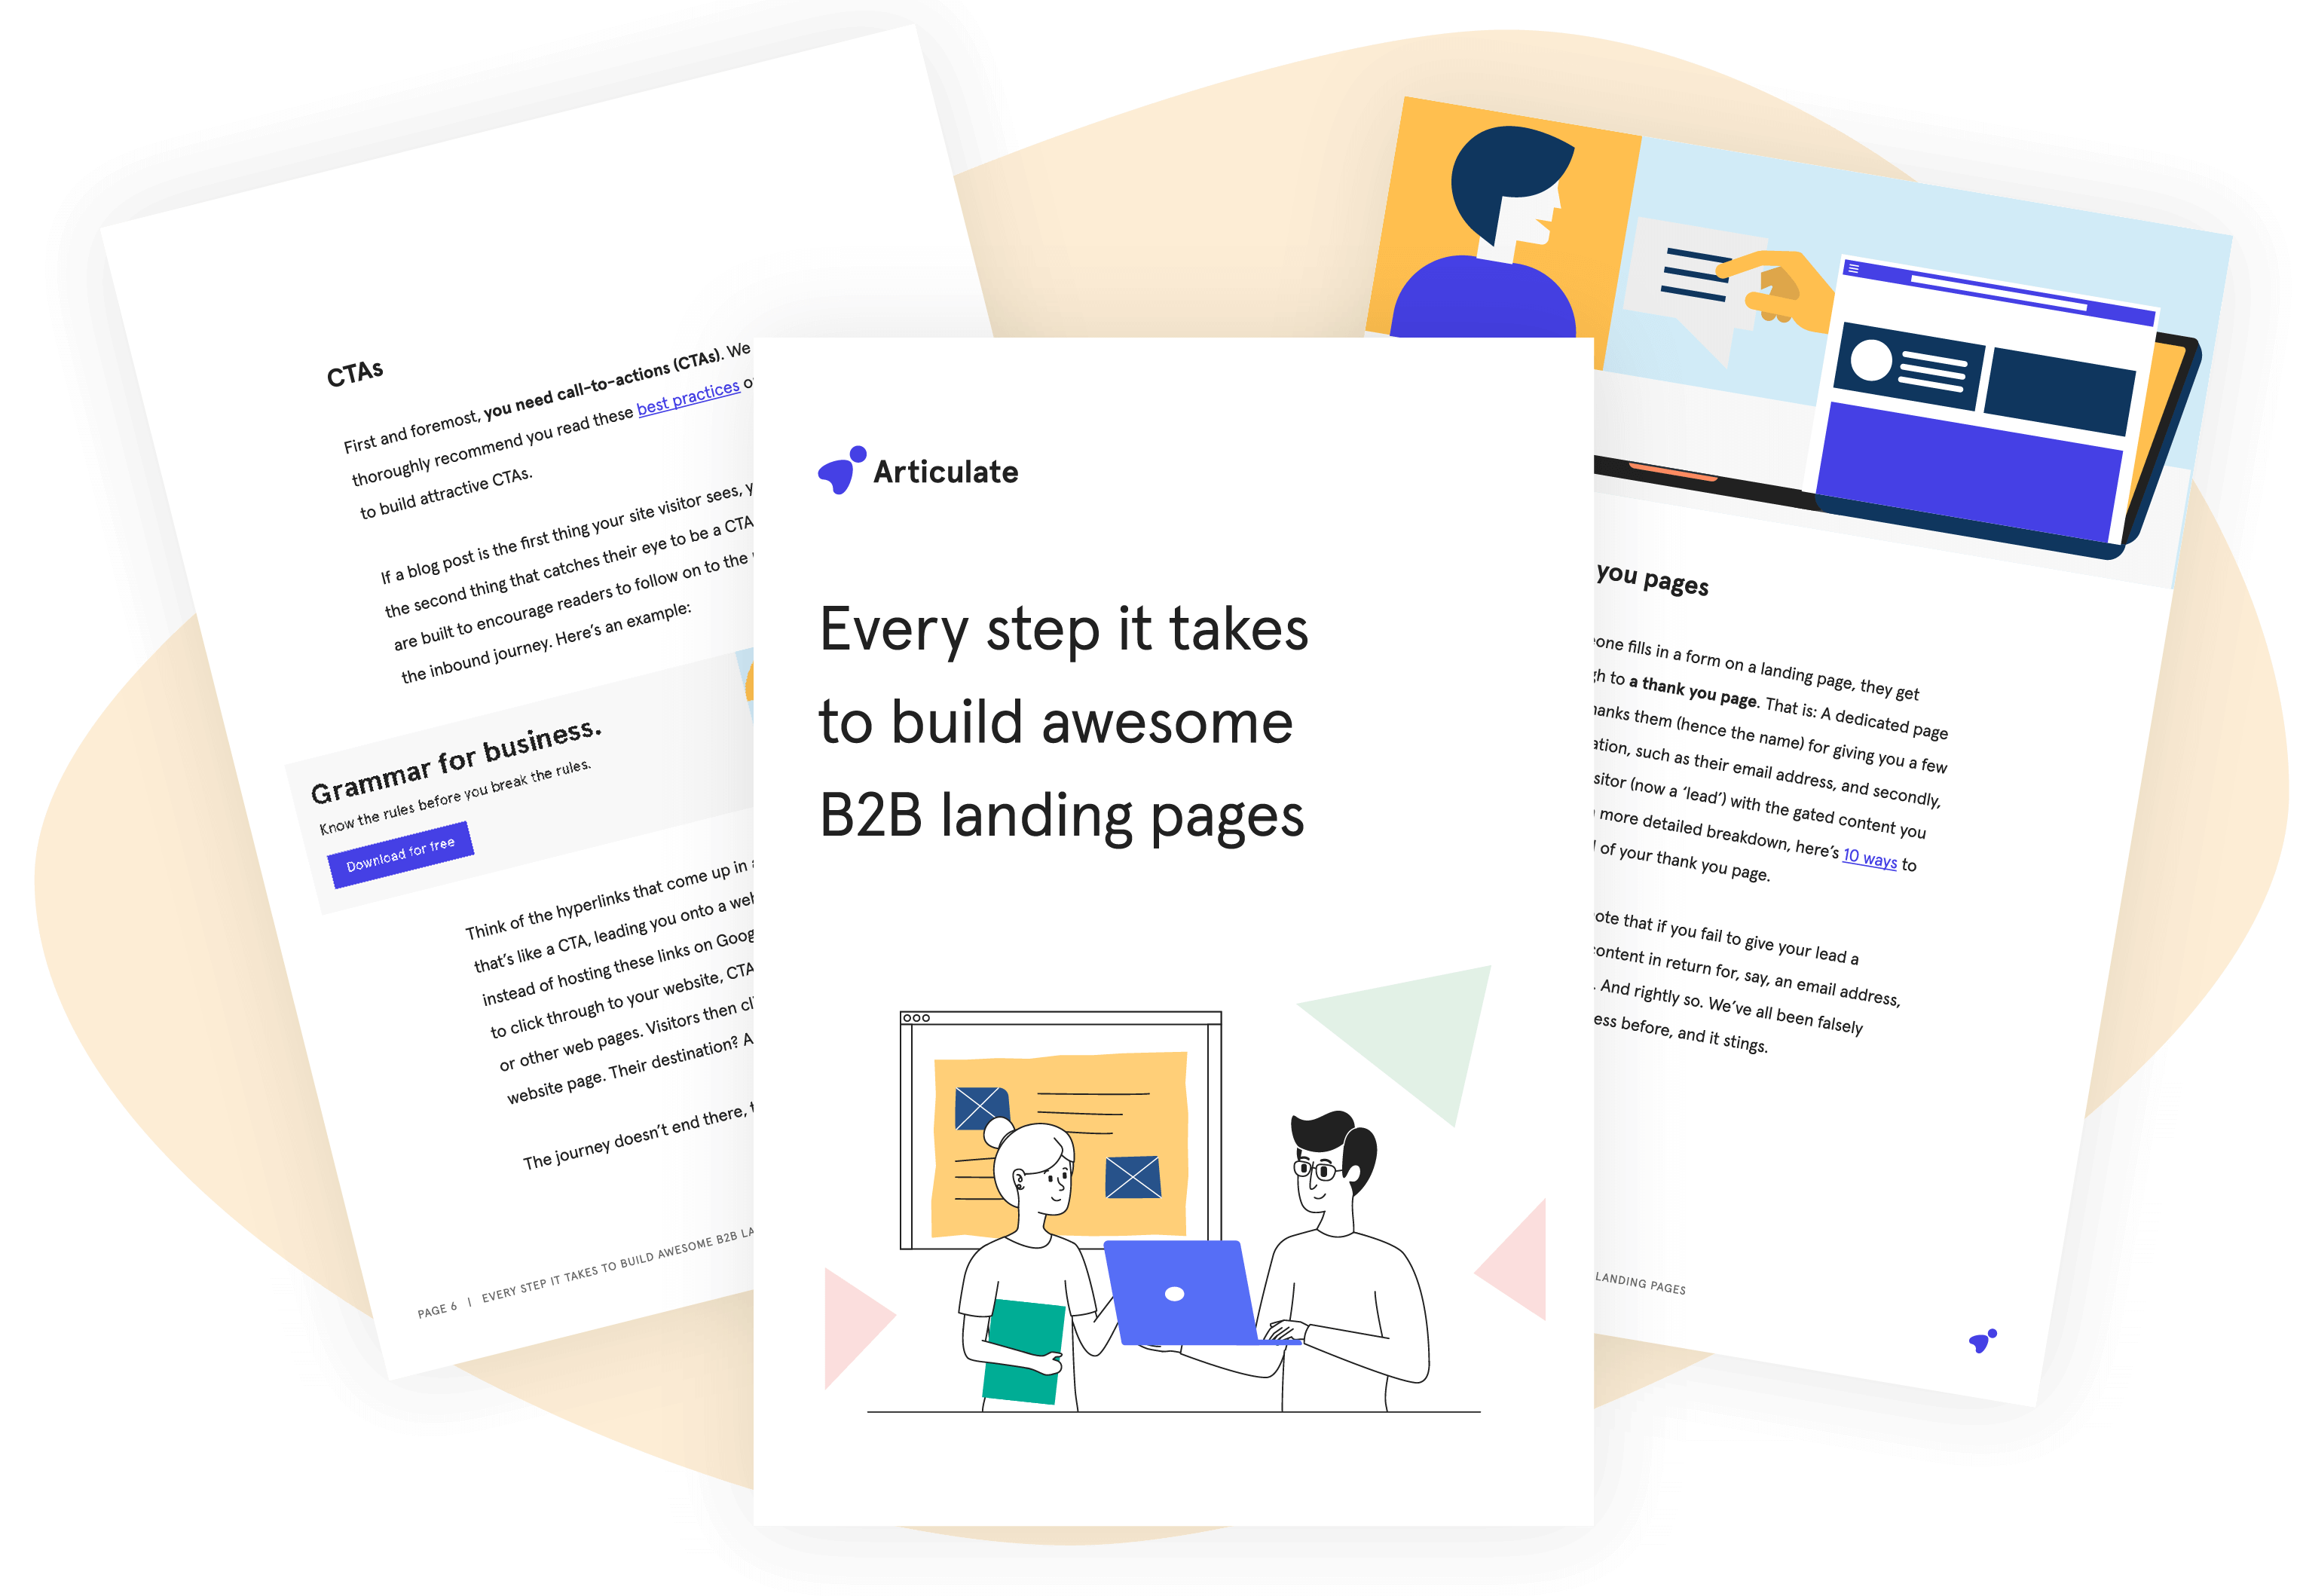 Every step it takes to build awesome B2B landing pages